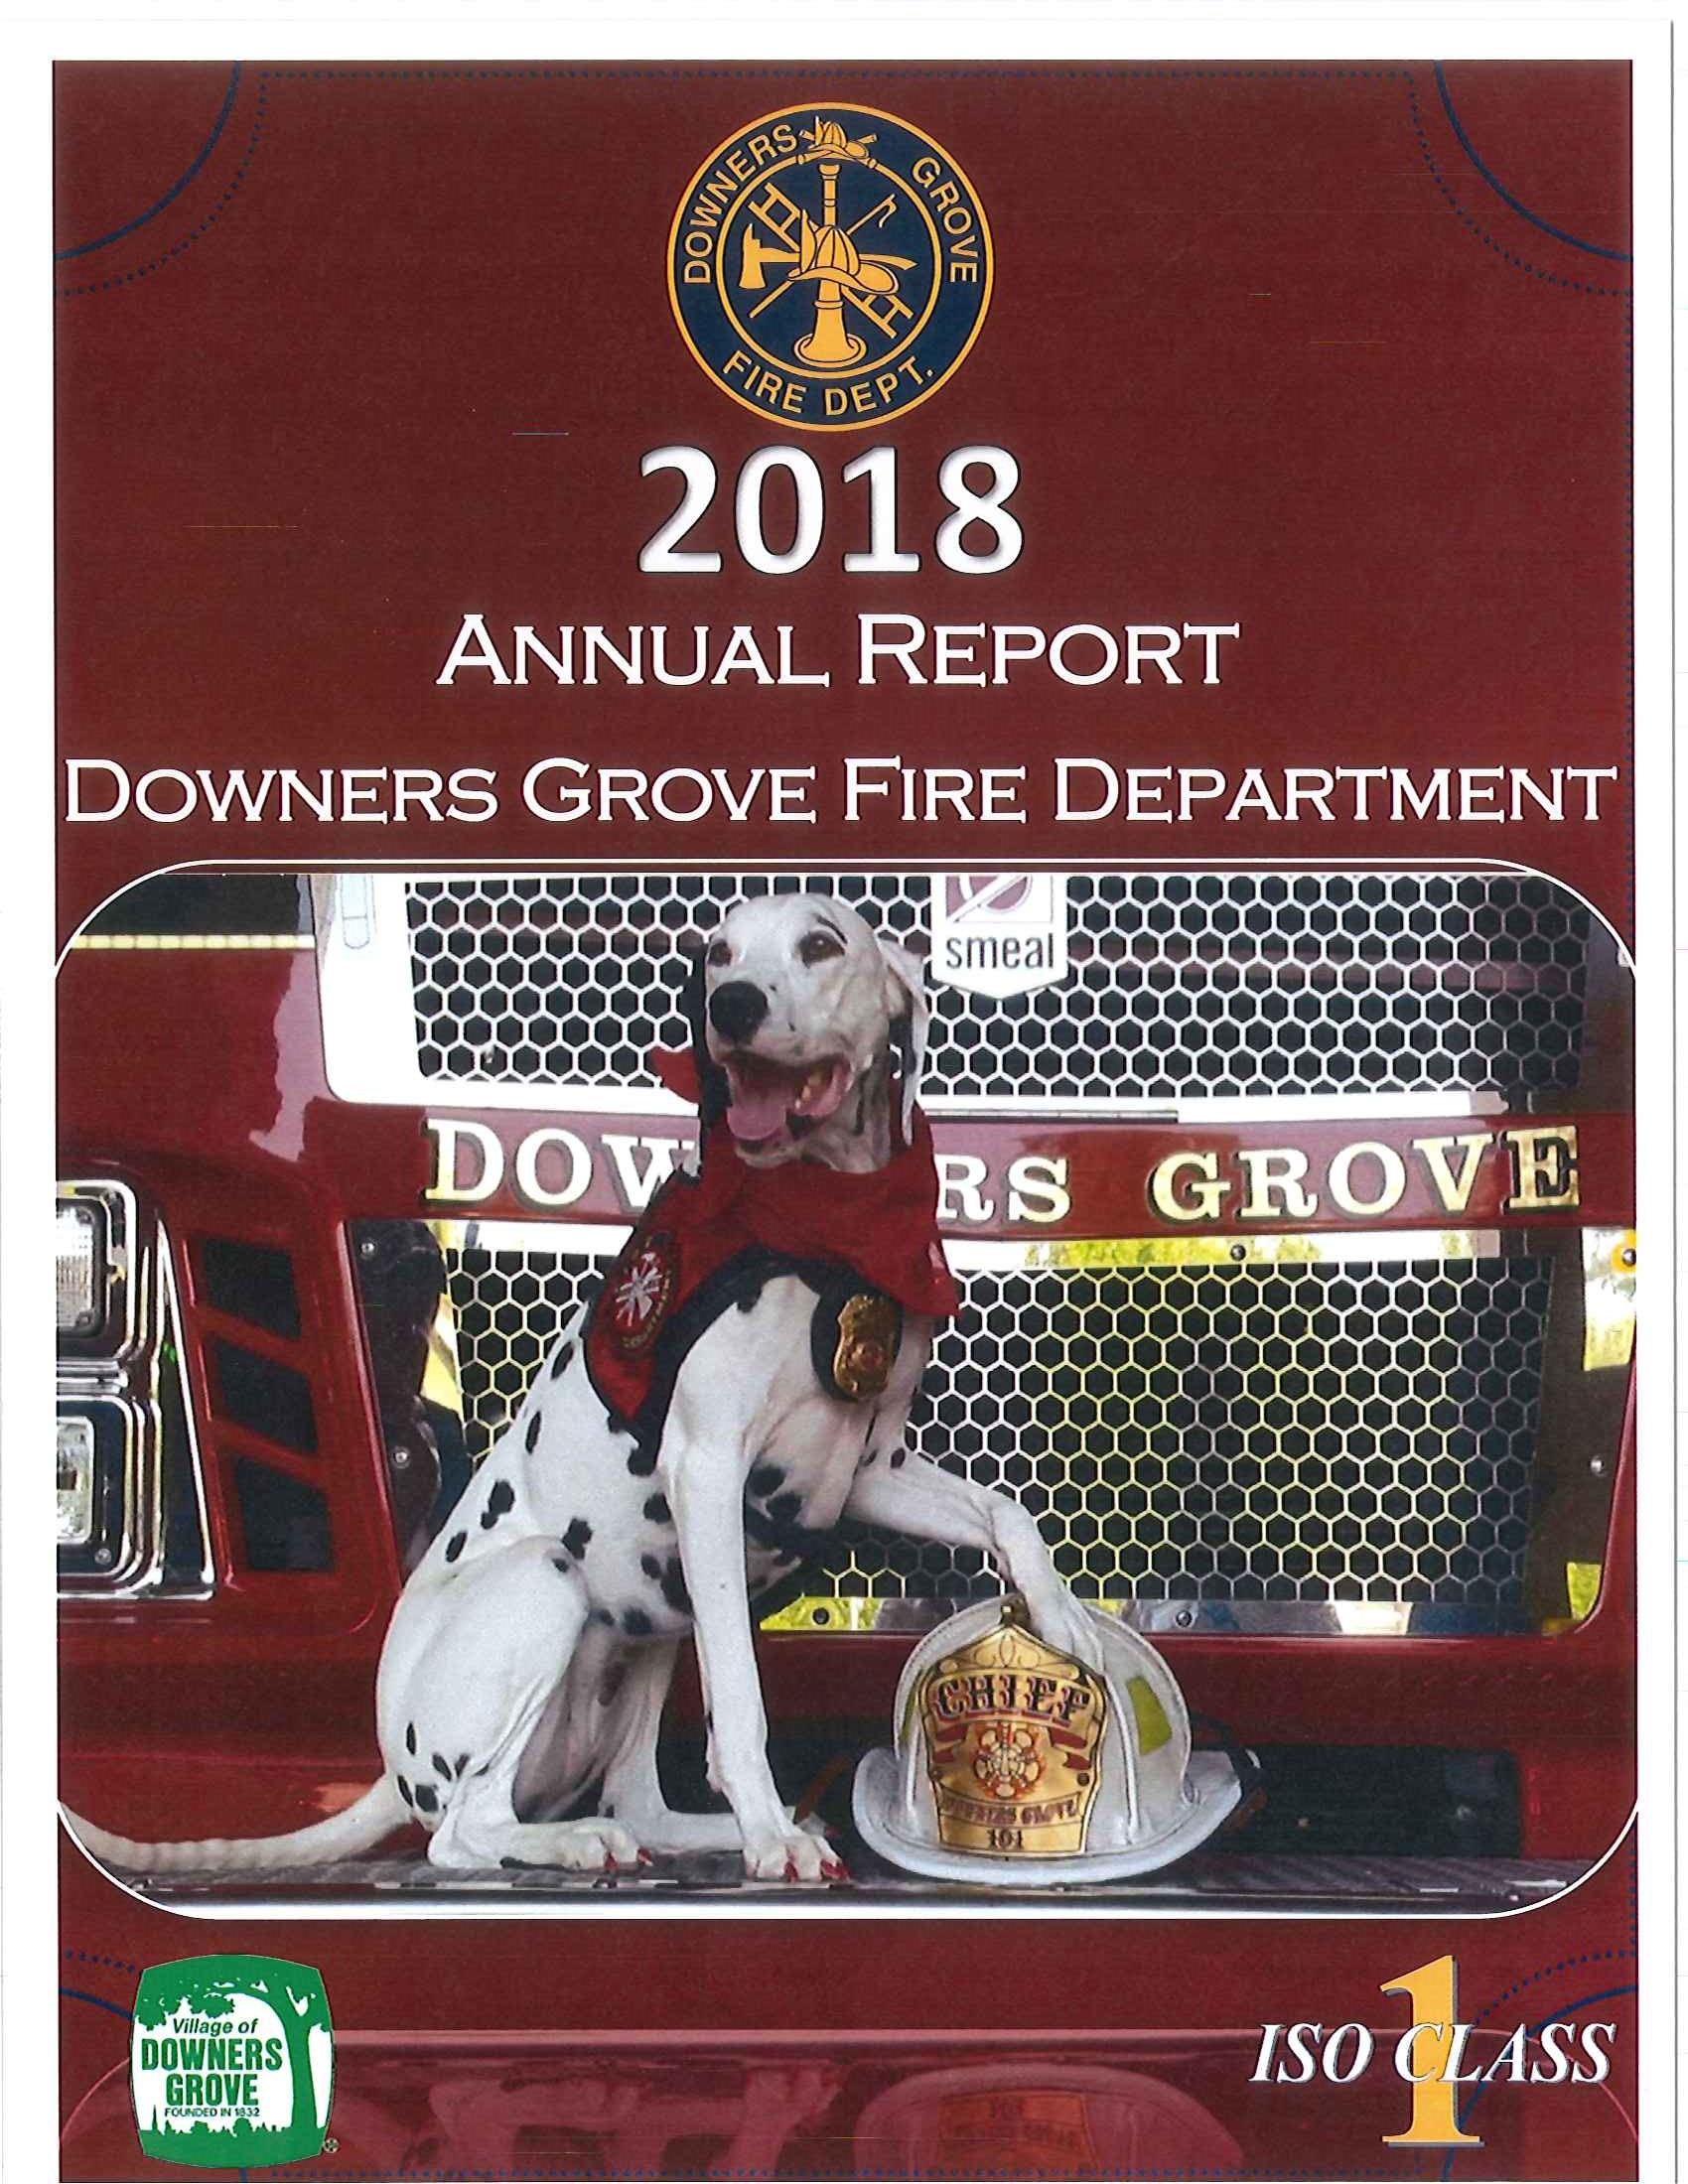 Fire Department | Village of Downers Grove